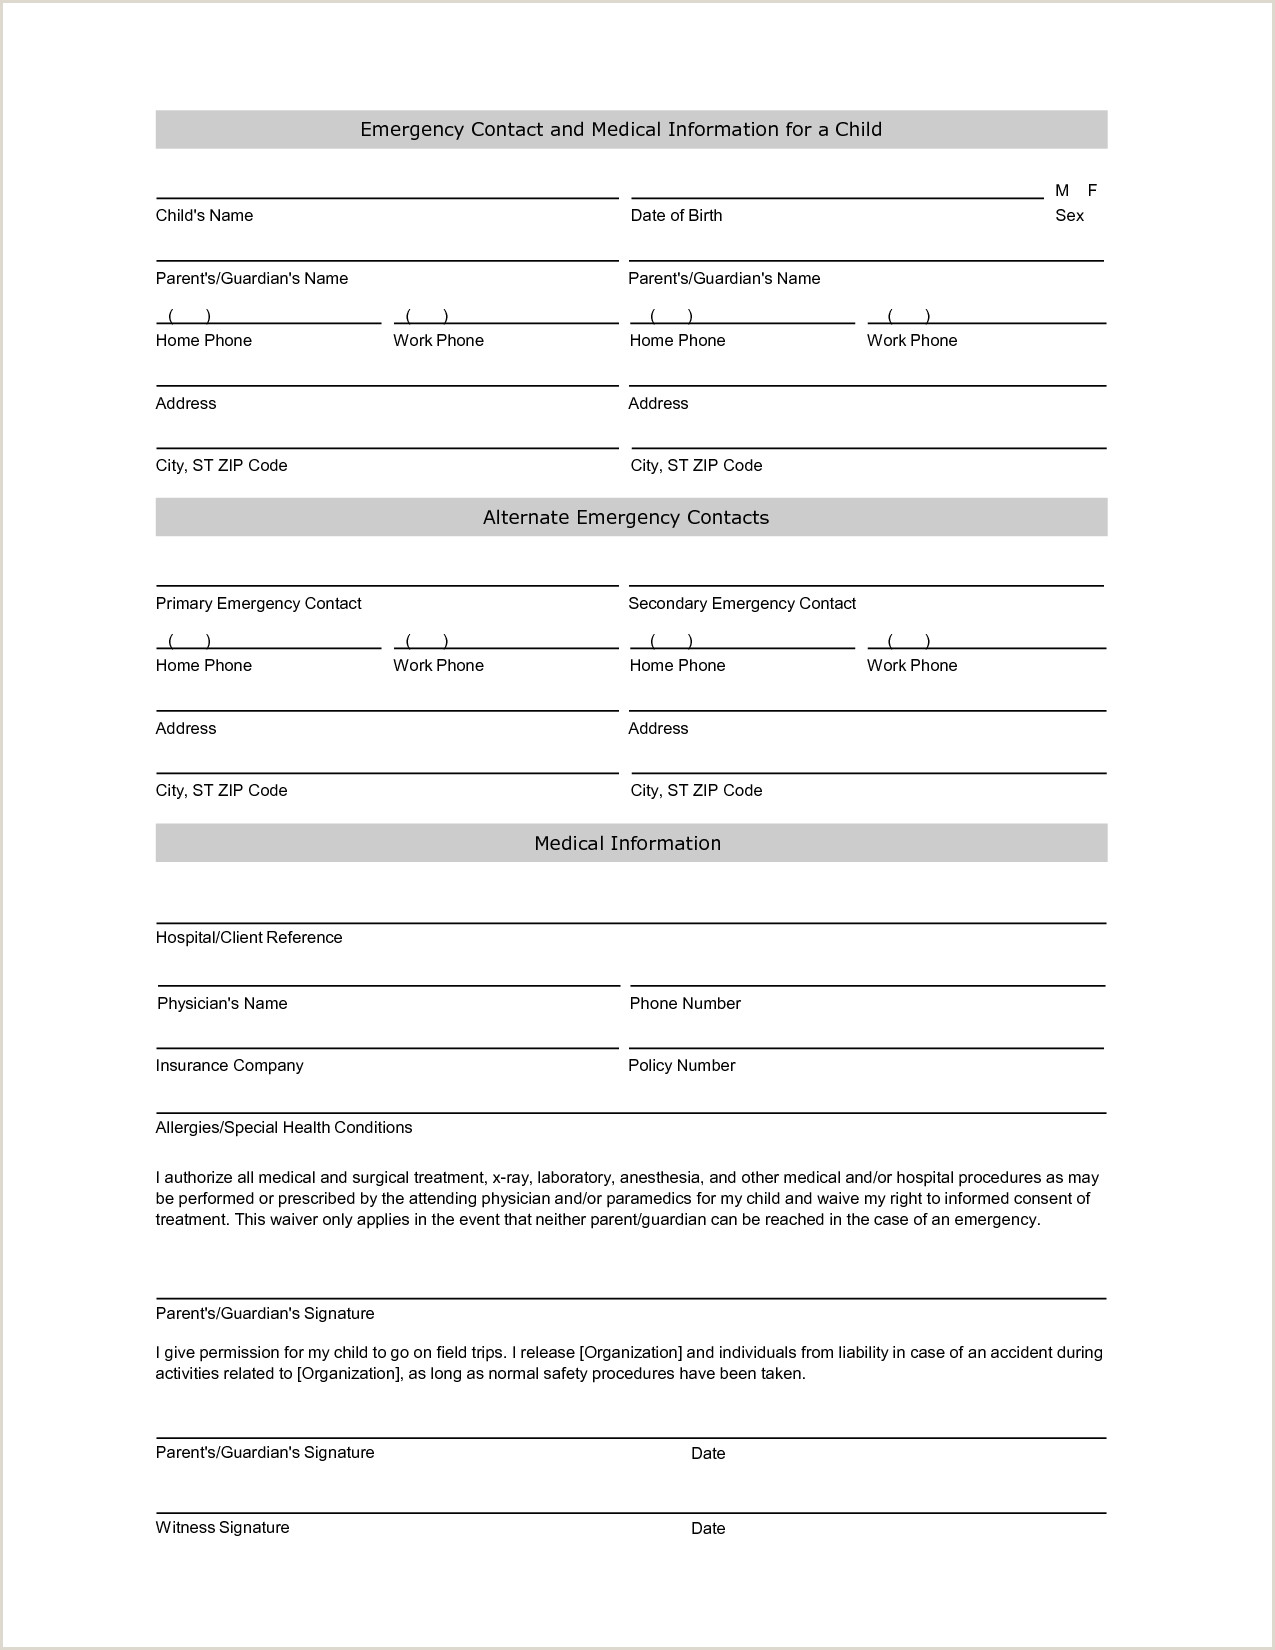 Emergency Contact form for Babysitter Emergency Contact Information form Template